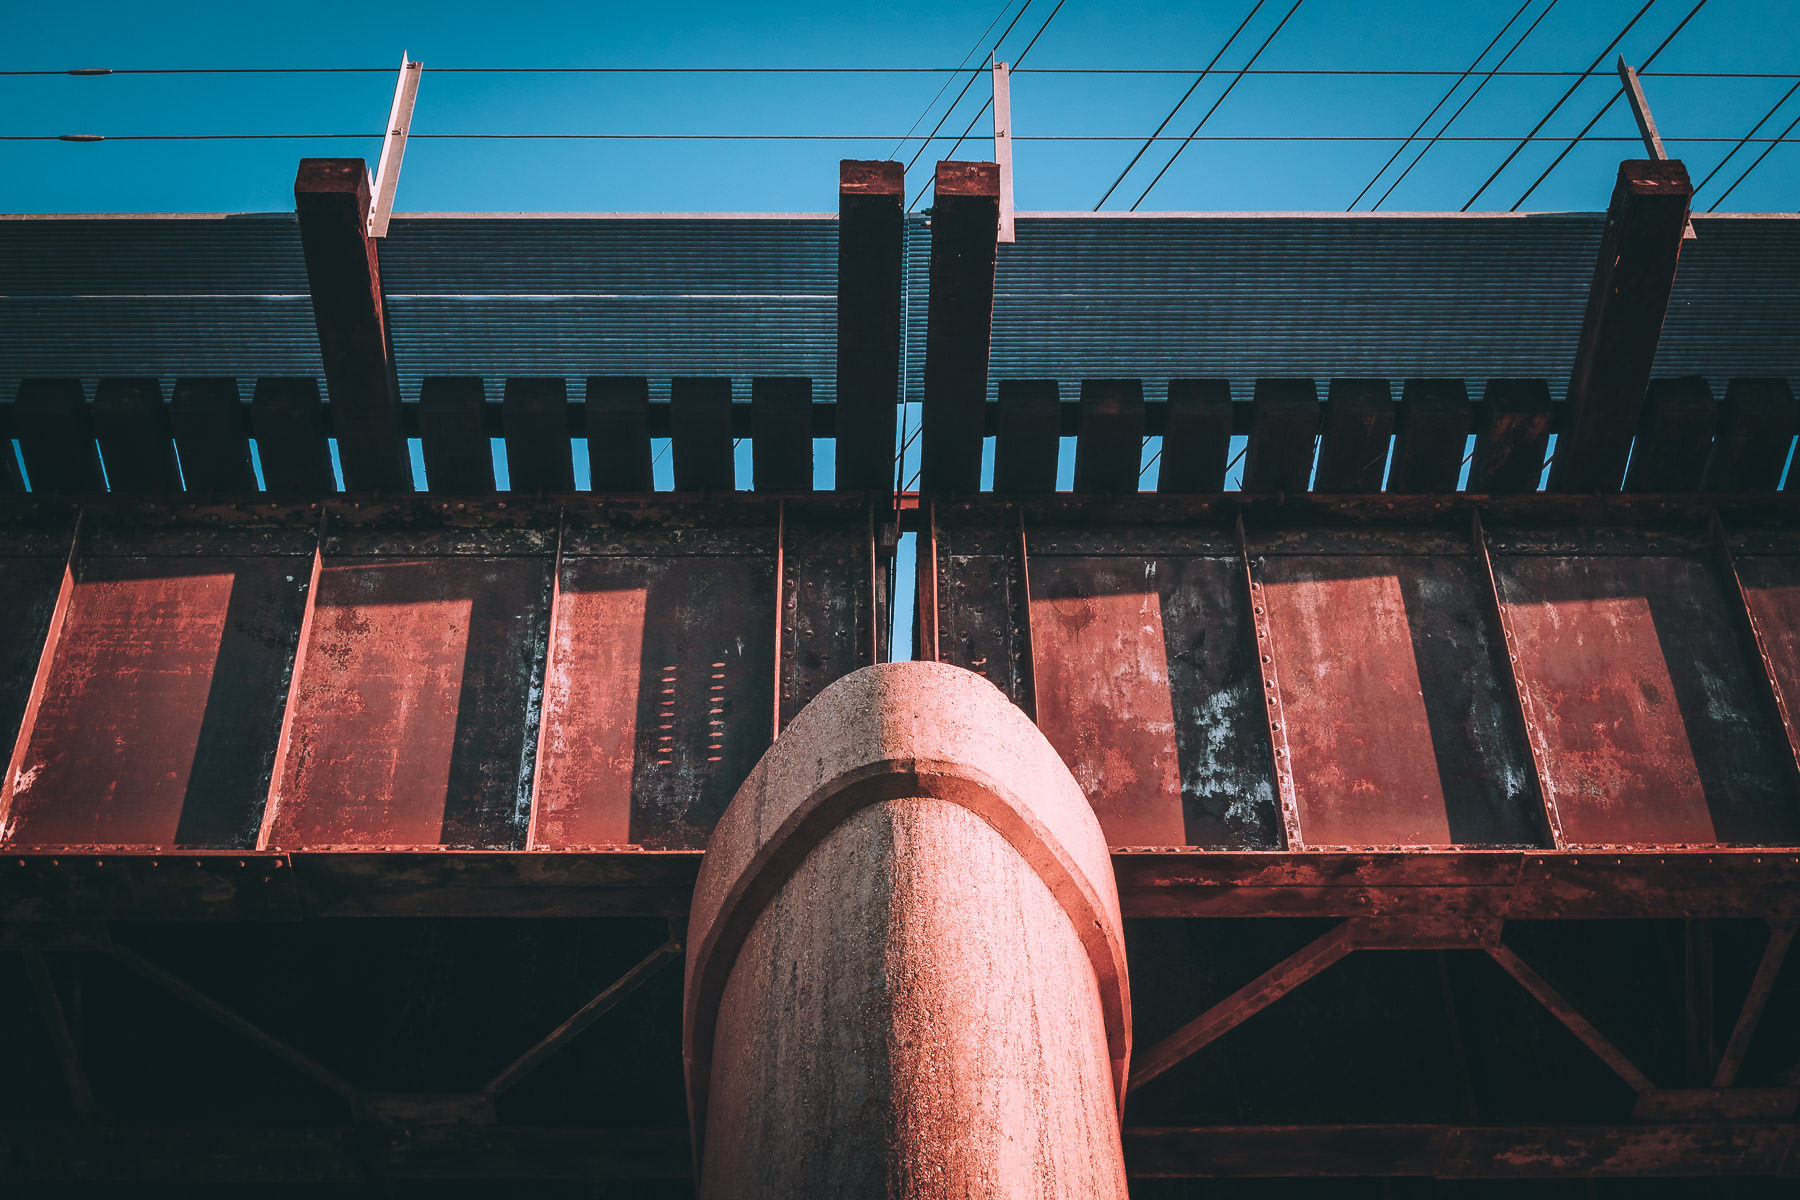 Detail of a railroad bridge spotted near Downtown Dallas, Texas.